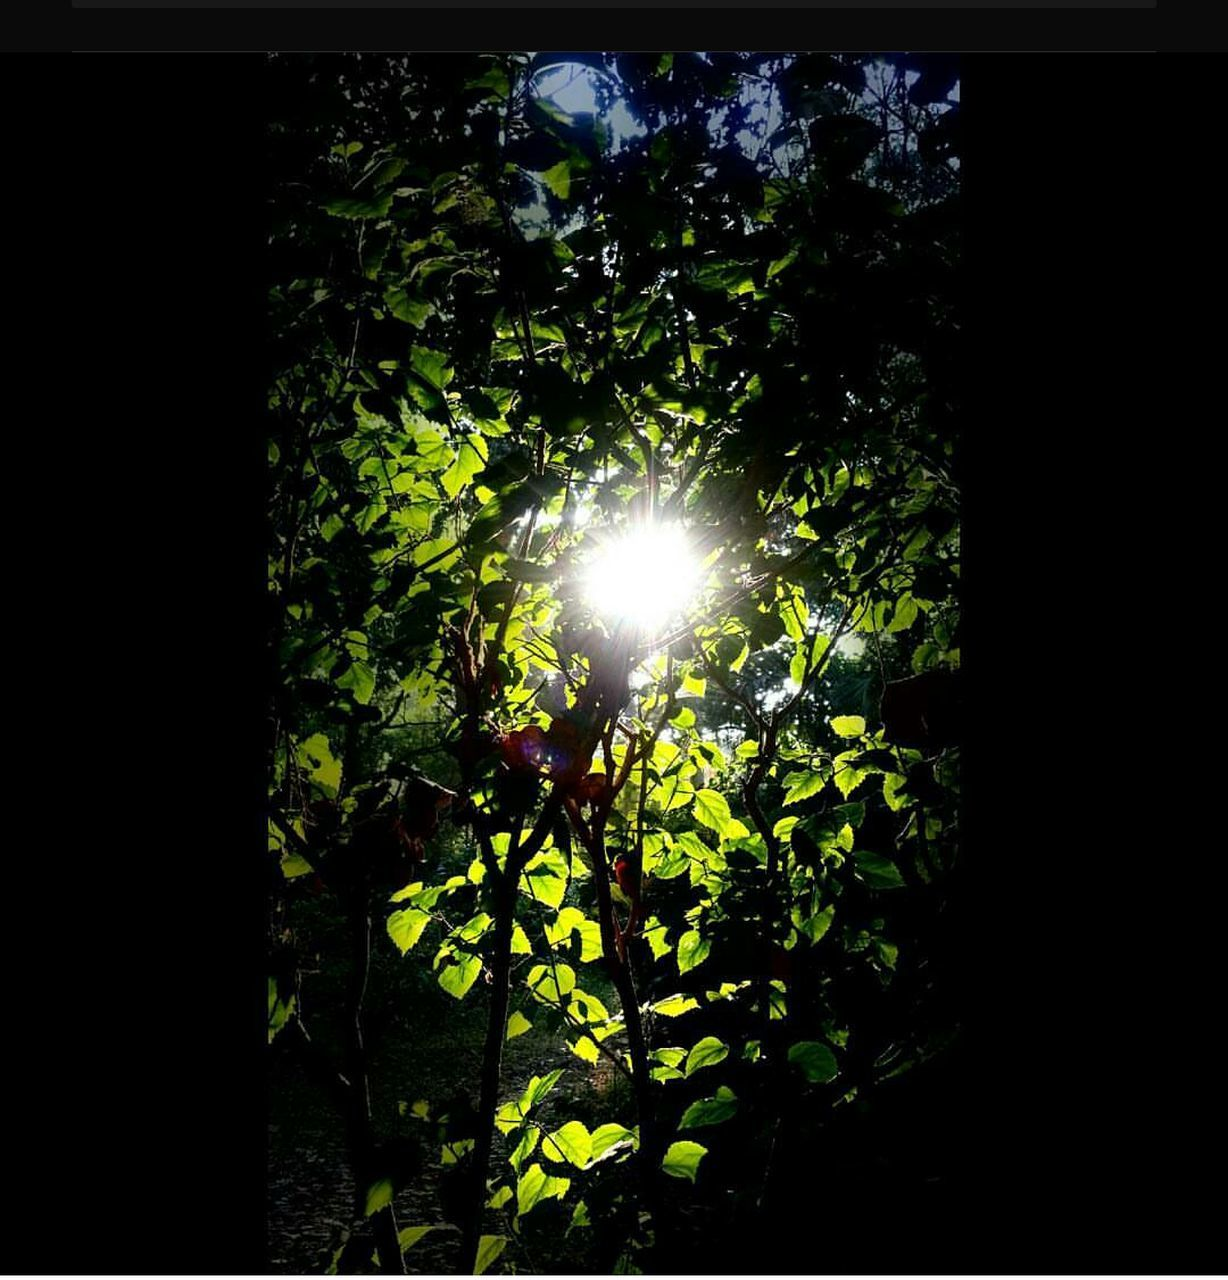 growth, sun, sunlight, nature, lens flare, sunbeam, no people, tree, bright, tranquility, plant, low angle view, outdoors, beauty in nature, leaf, day, close-up